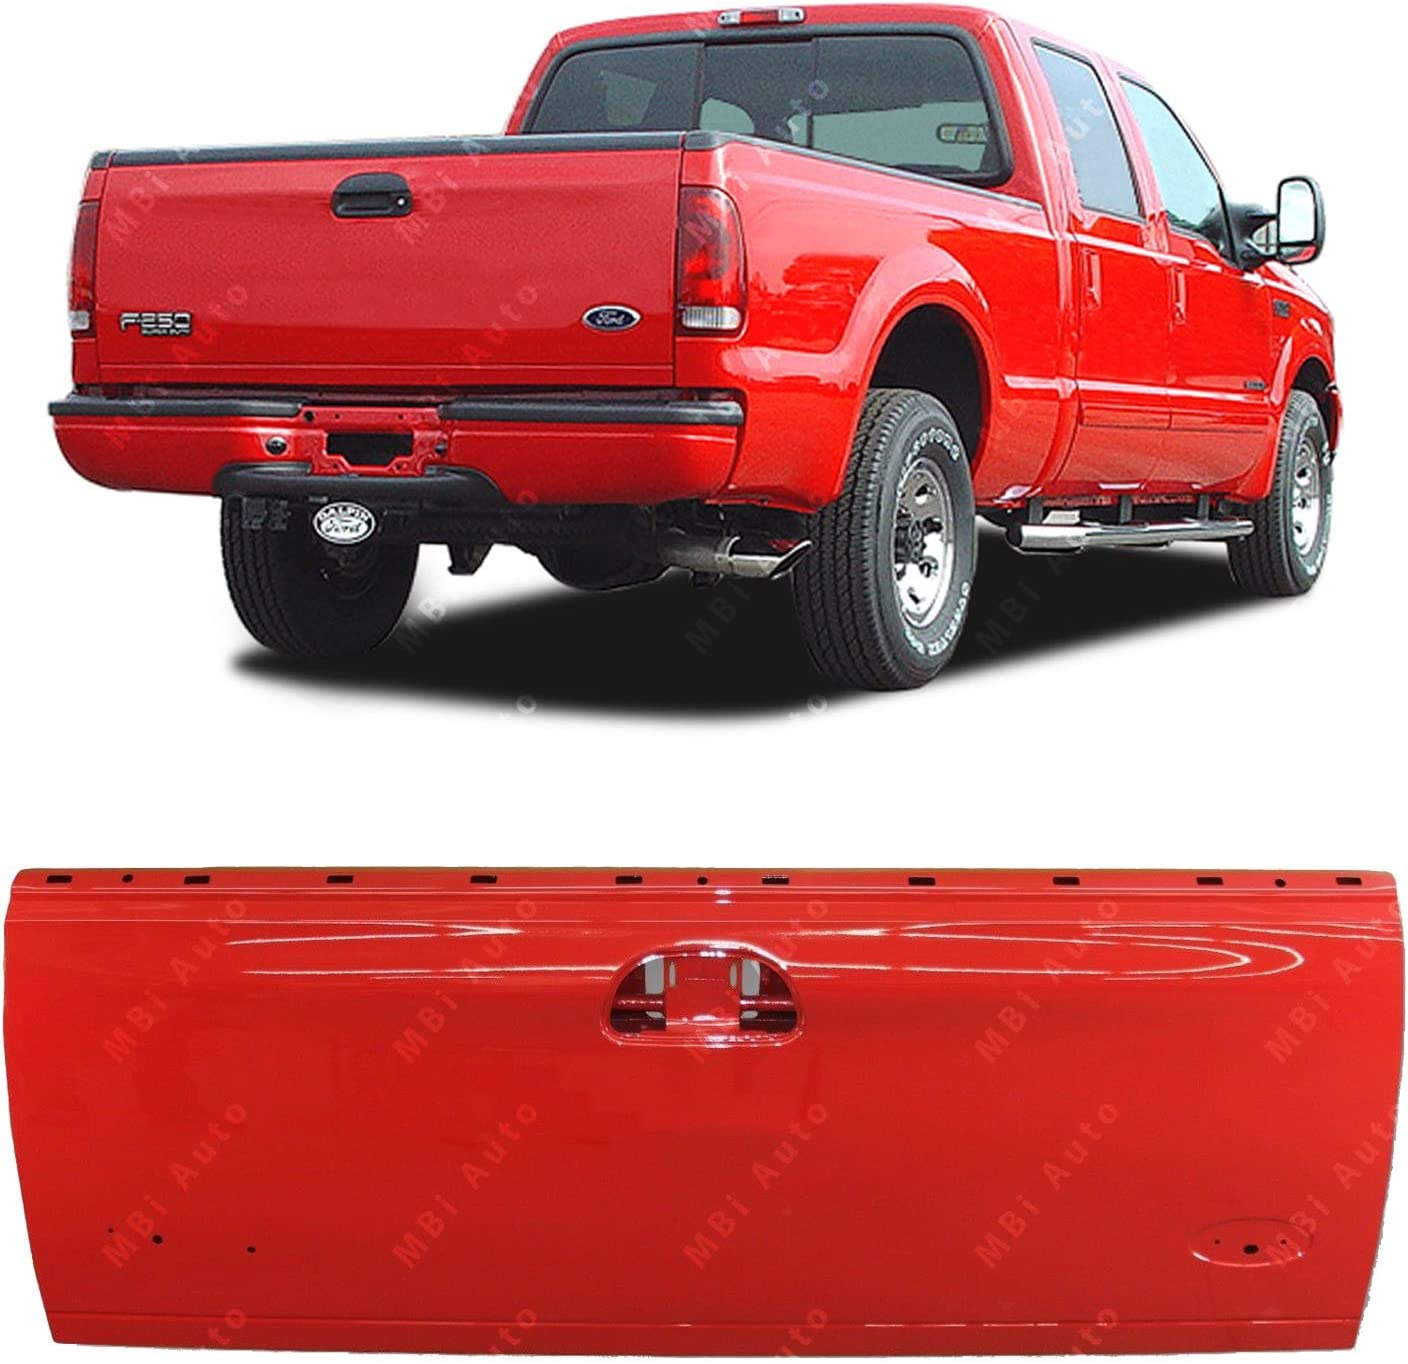 FO1900103 Tailgate for 80-86 Ford F-150